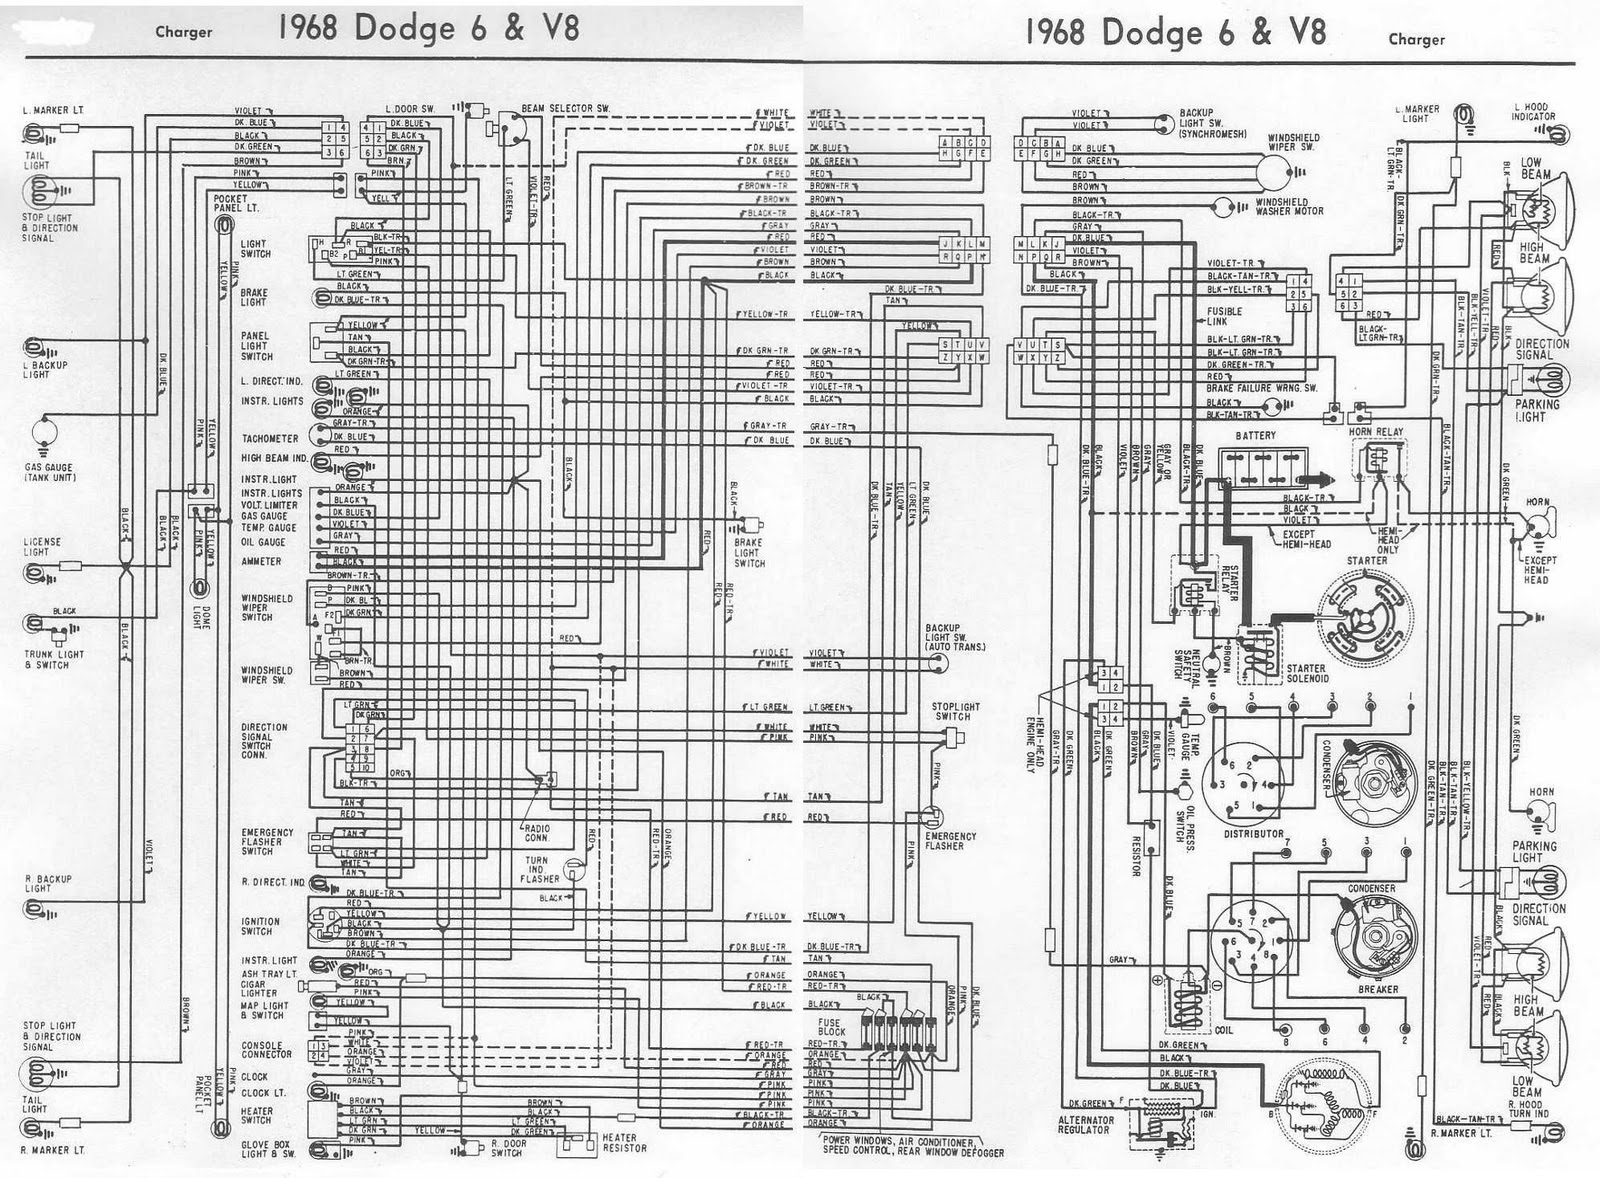 73 Dodge Charger Wiring Diagram Free For You Electrical Connections 1968 Challenger Simple Schema Rh 17 Aspire Atlantis De 1973